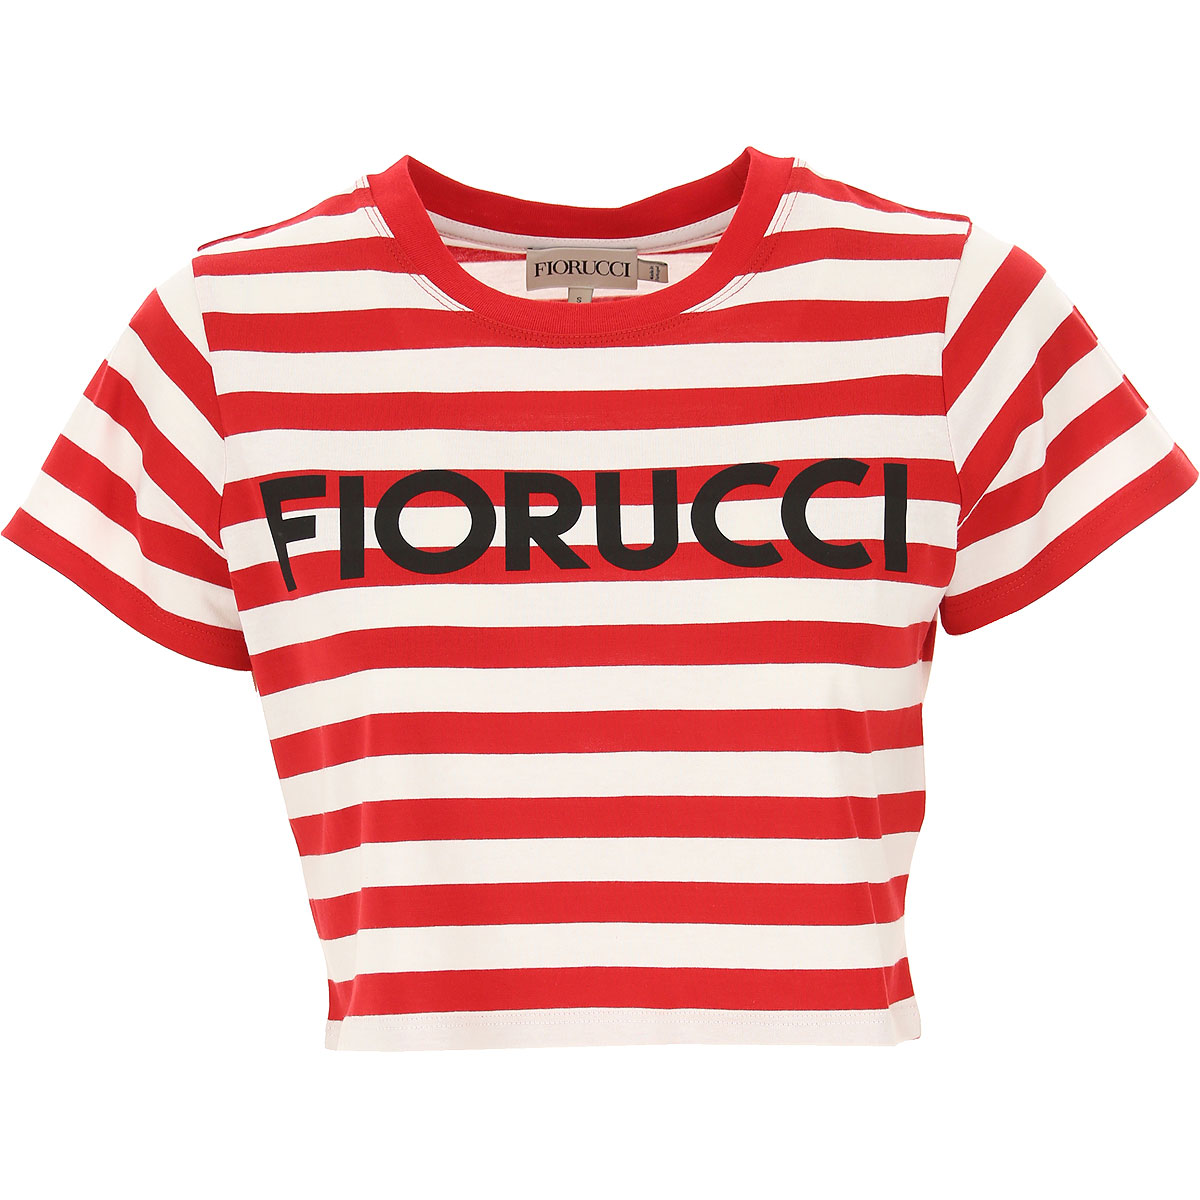 Fiorucci T-Shirt for Women, Red, Cotton, 2019, 2 4 6 8